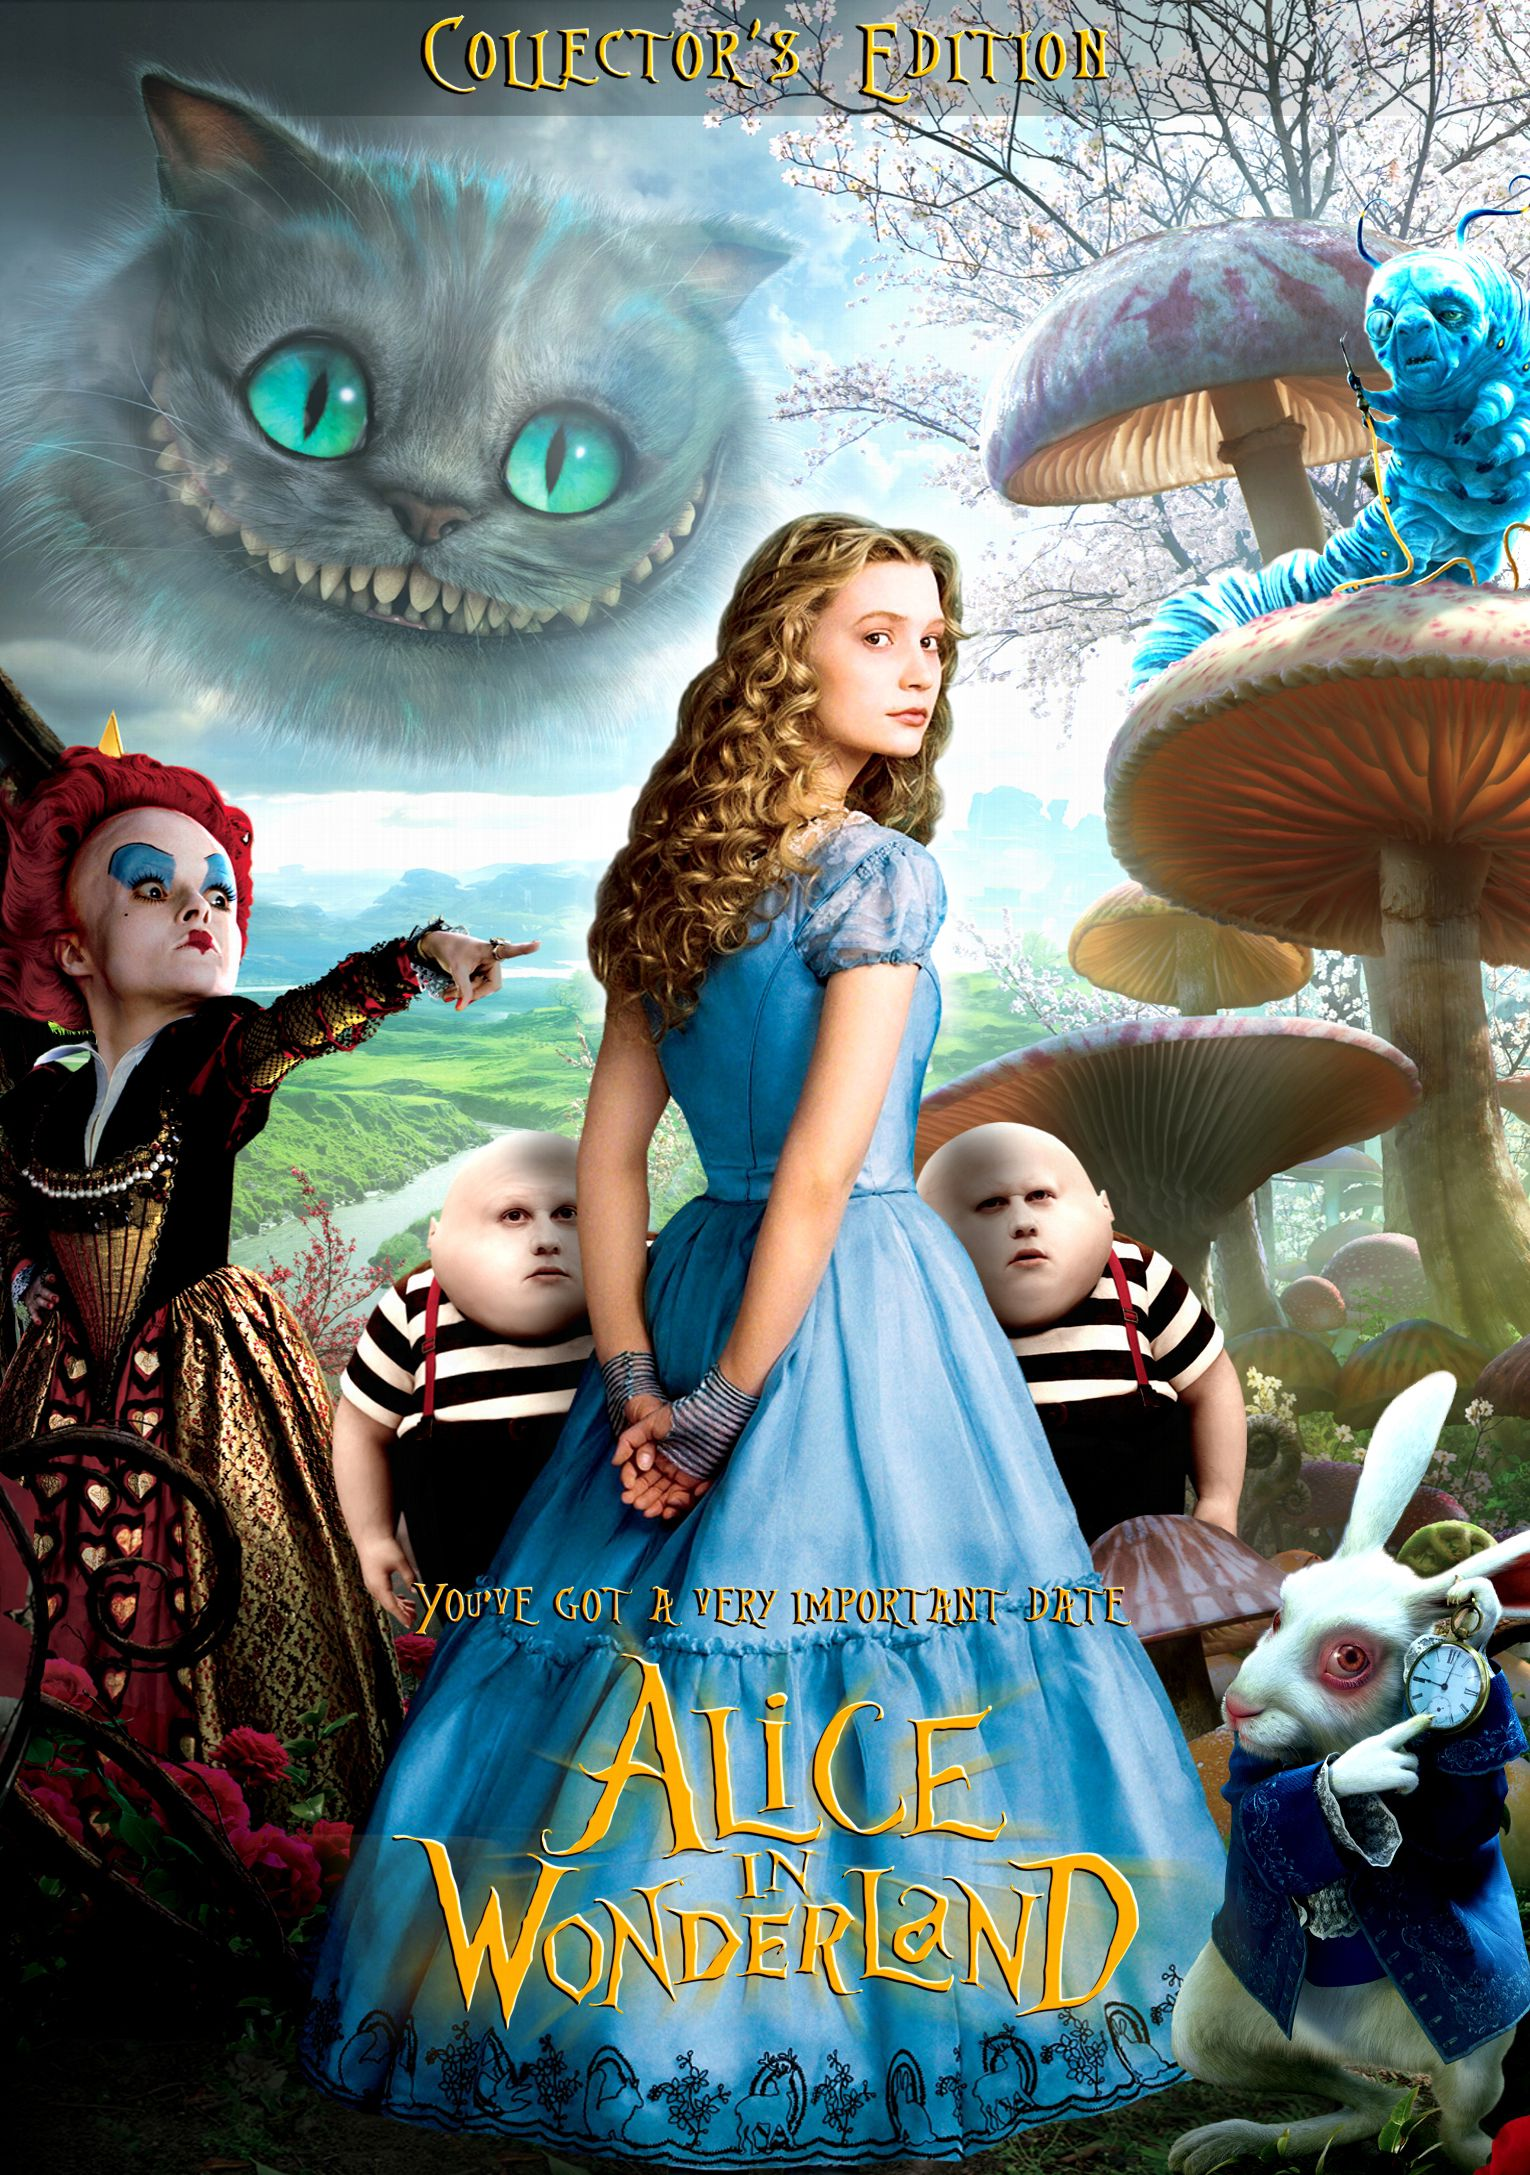 Alice And Wonderland Movie Poster Alice In Wonderland Adventures In Wonderland Alice